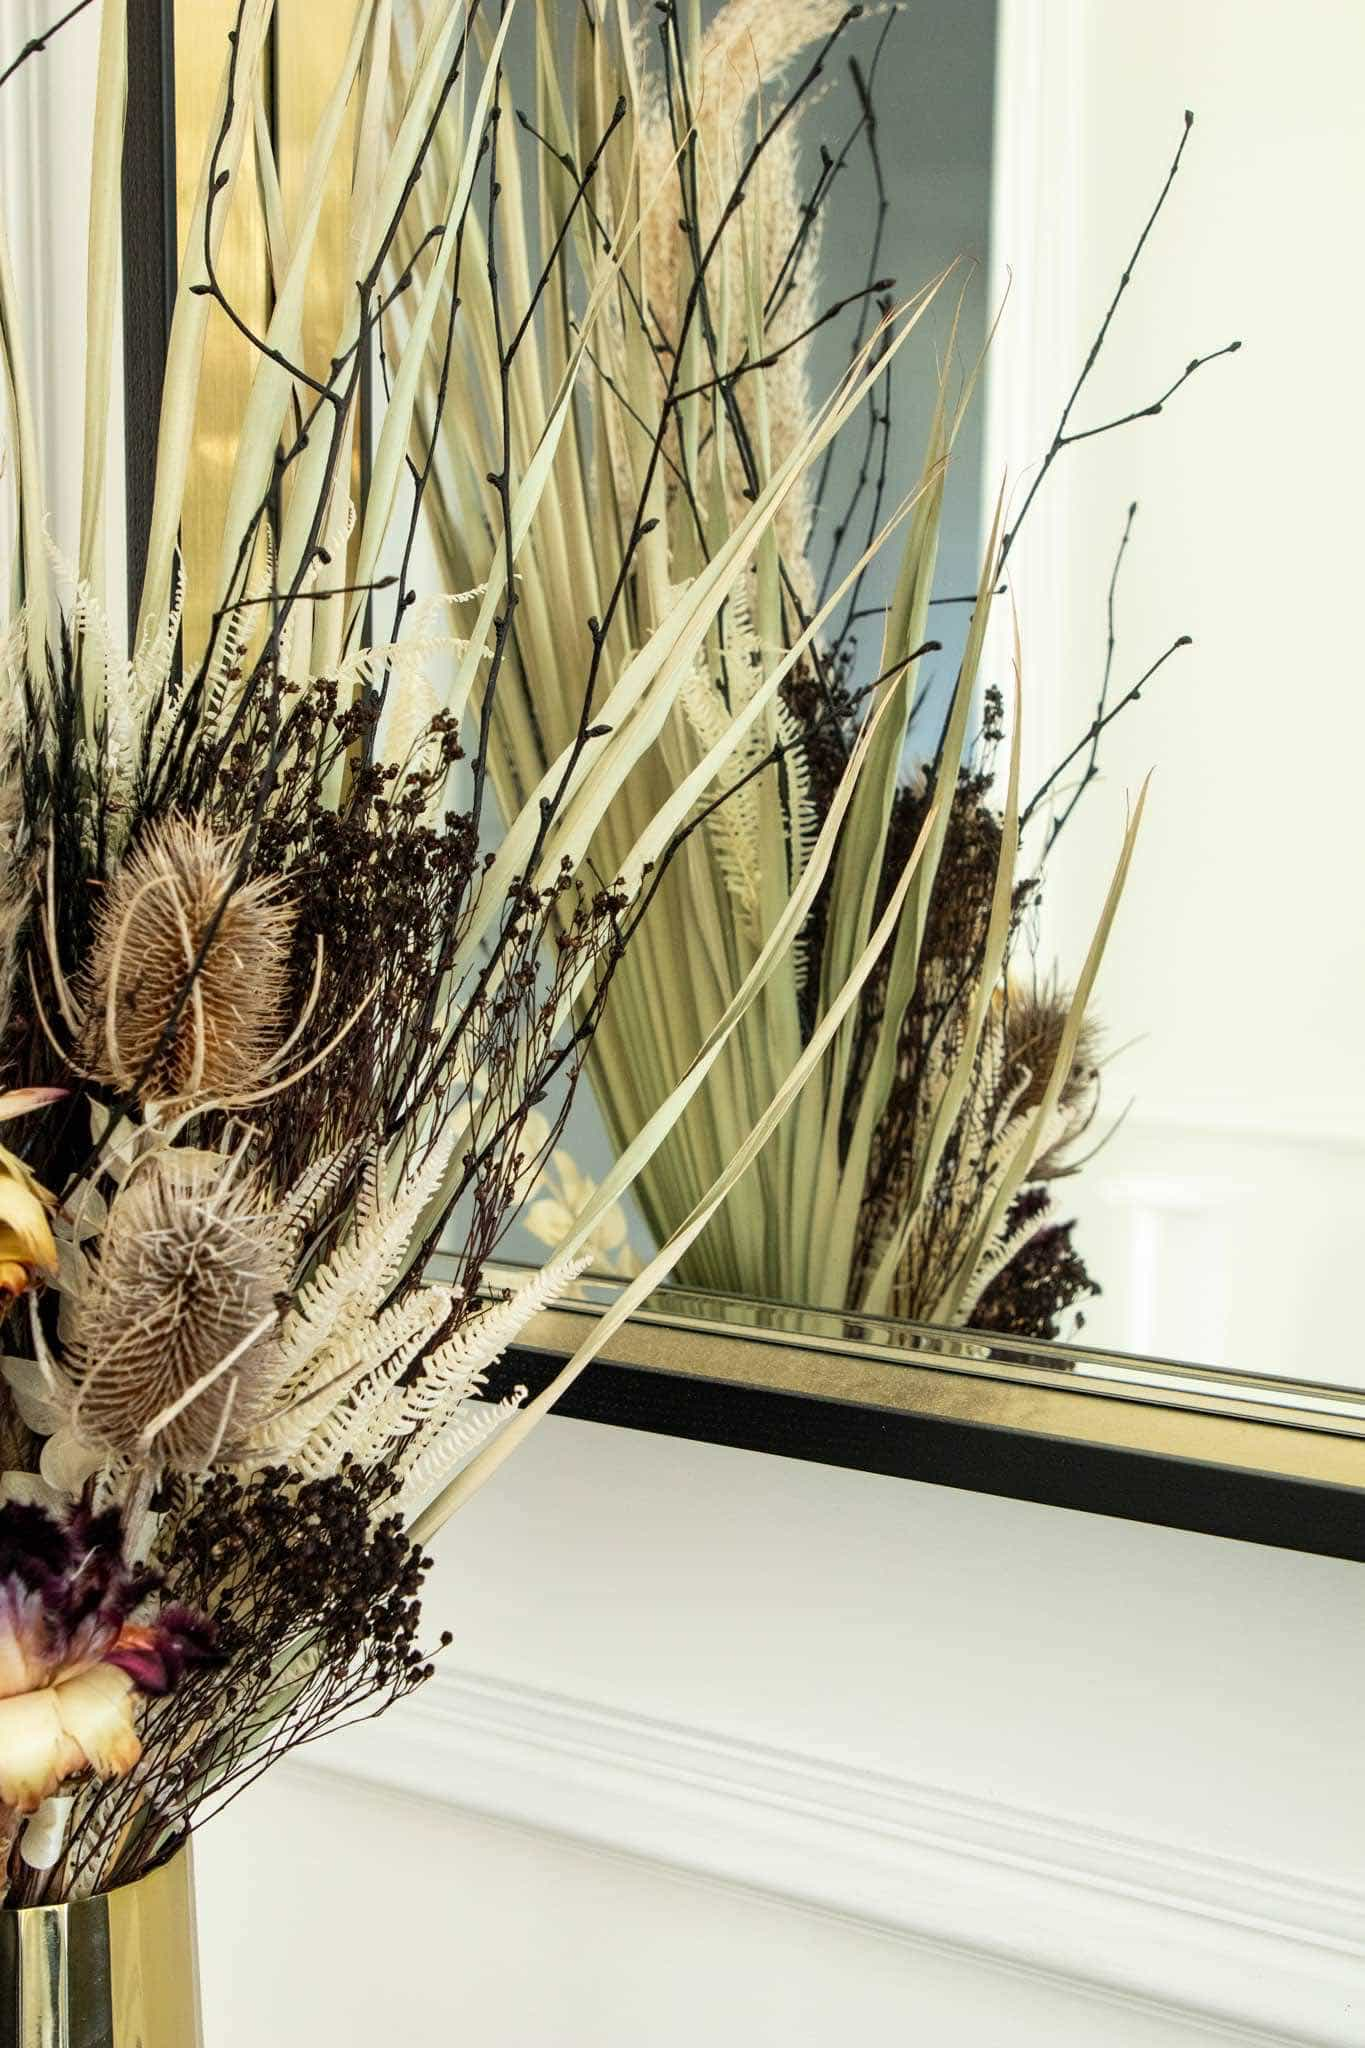 Detailed view of the dried flowers of the bouquet